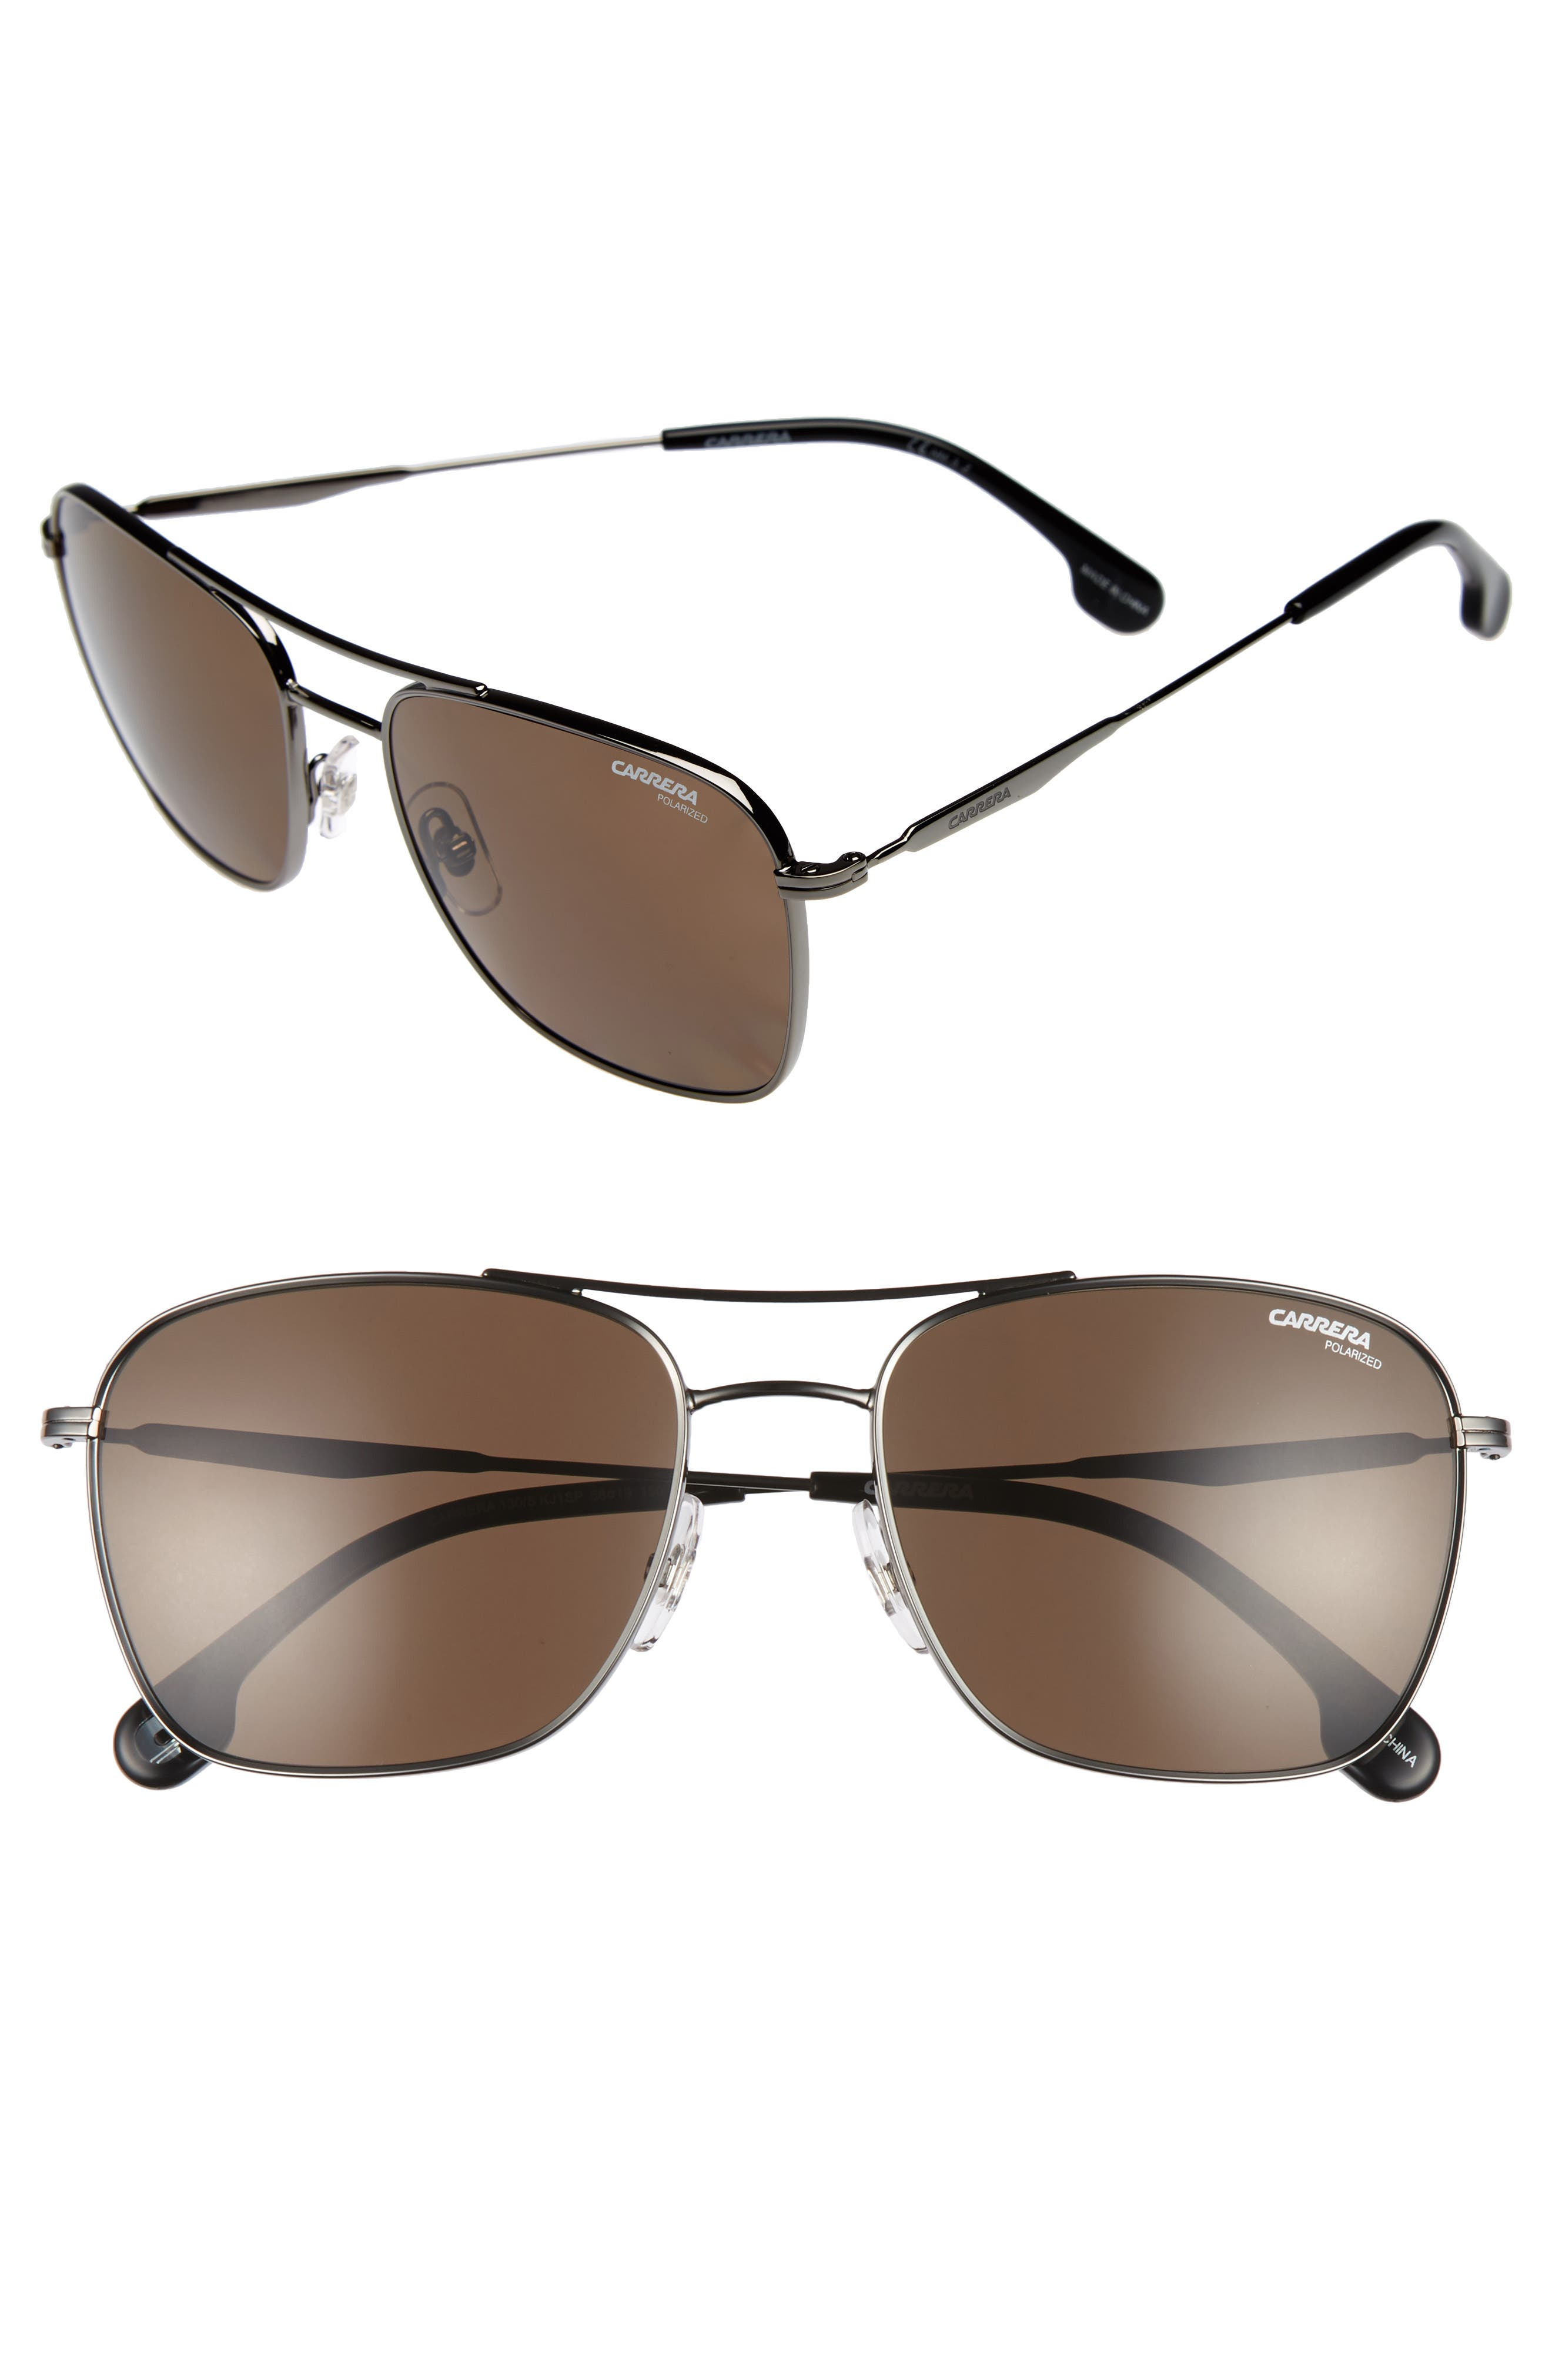 58m Polarized Sunglasses,                         Main,                         color, DARK RUTHENIUM